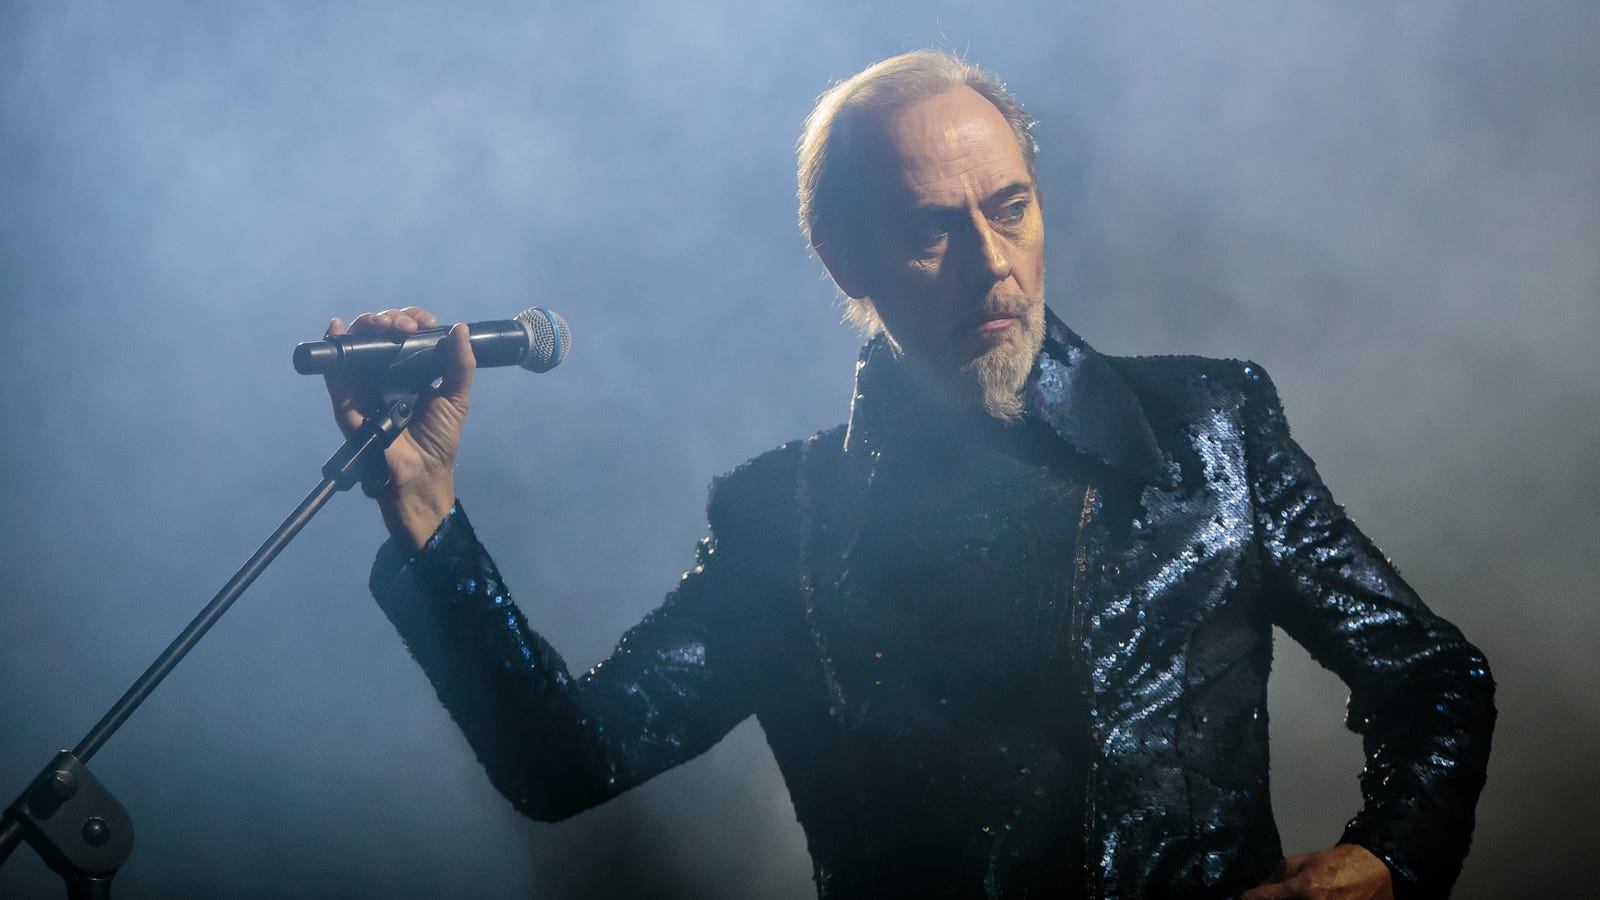 Bauhaus' Peter Murphy cancels multiple residency shows after suffering heart attack